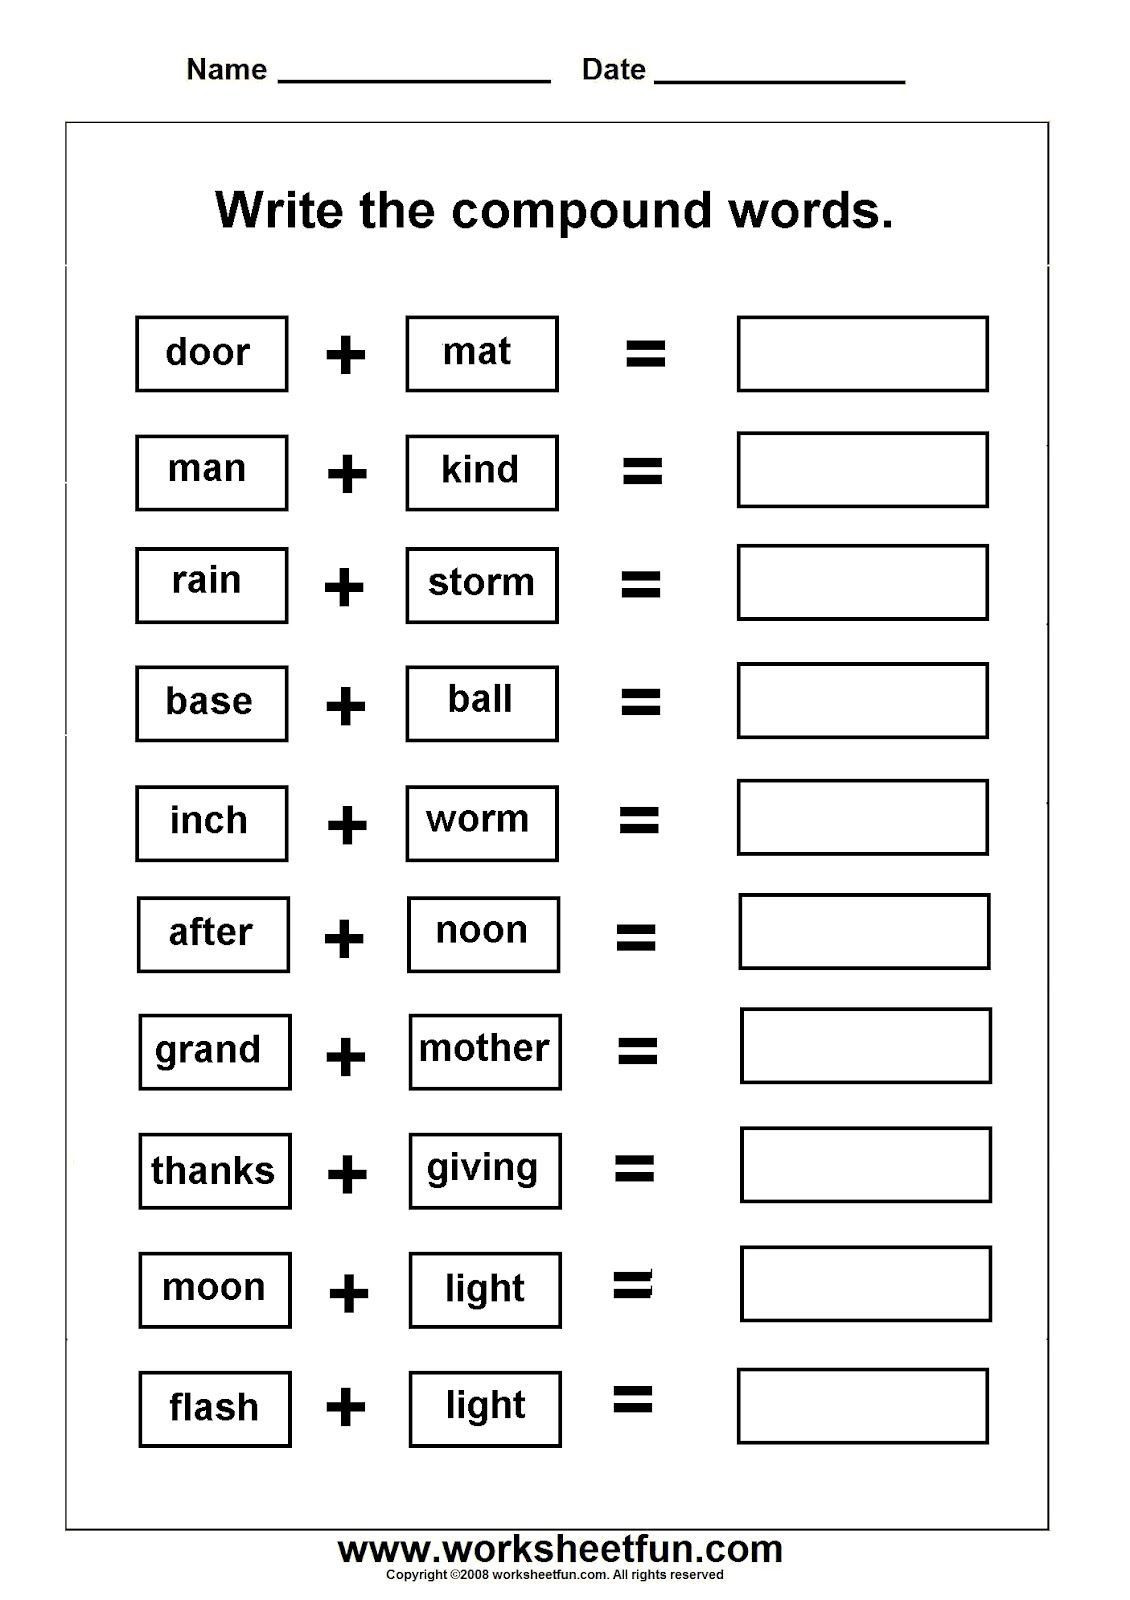 Free Printable Compound Word Worksheets Pound Words Worksheets Grade 3 Worksheets Pound Words